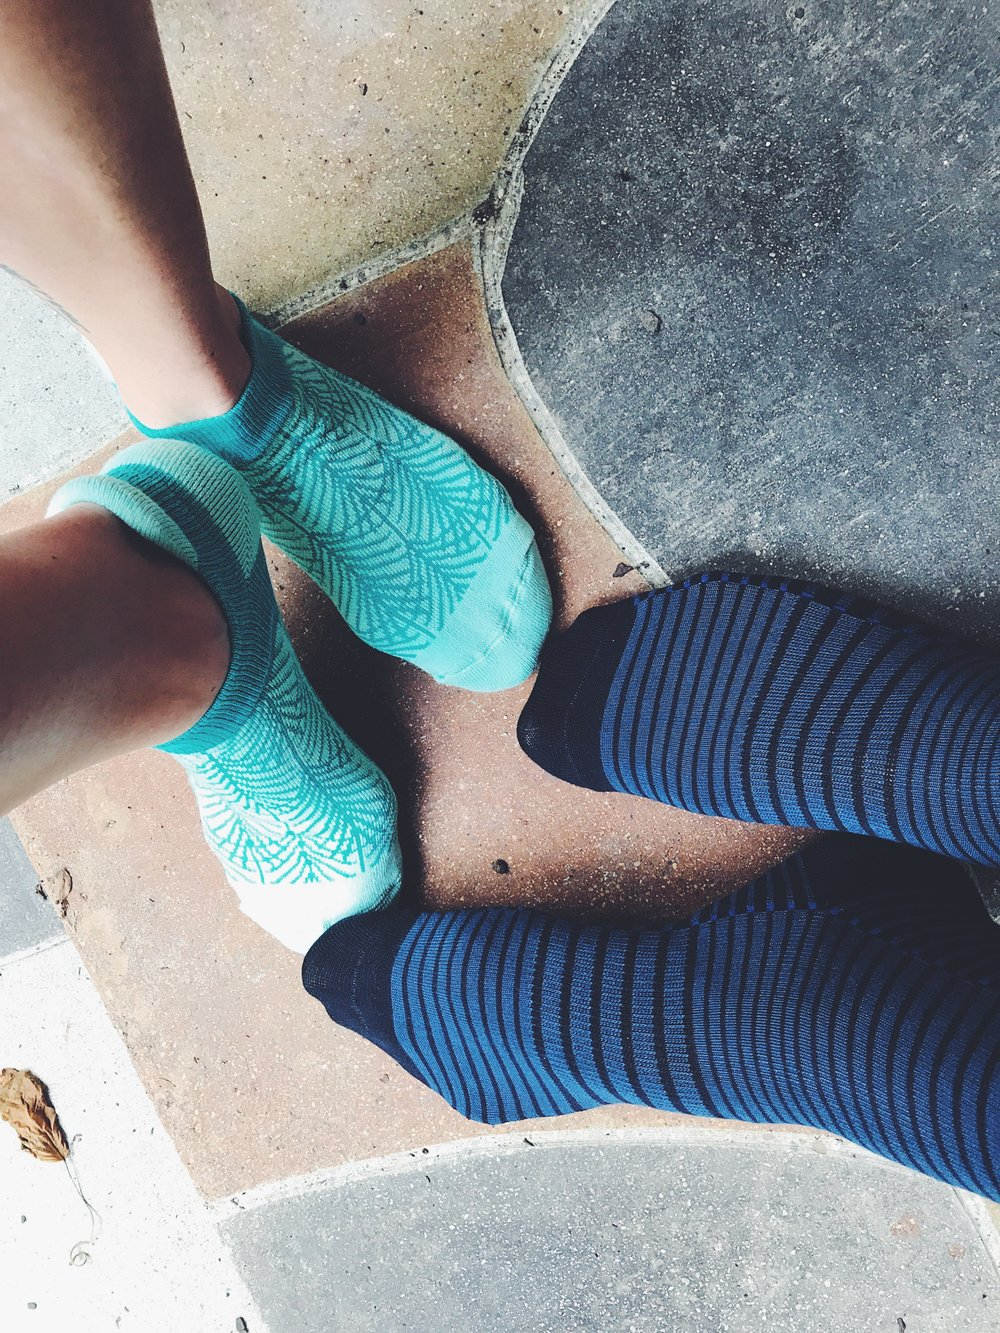 His & Her comfort socks! Super comfy and cute and you can choose options that you can dress up and dress down.